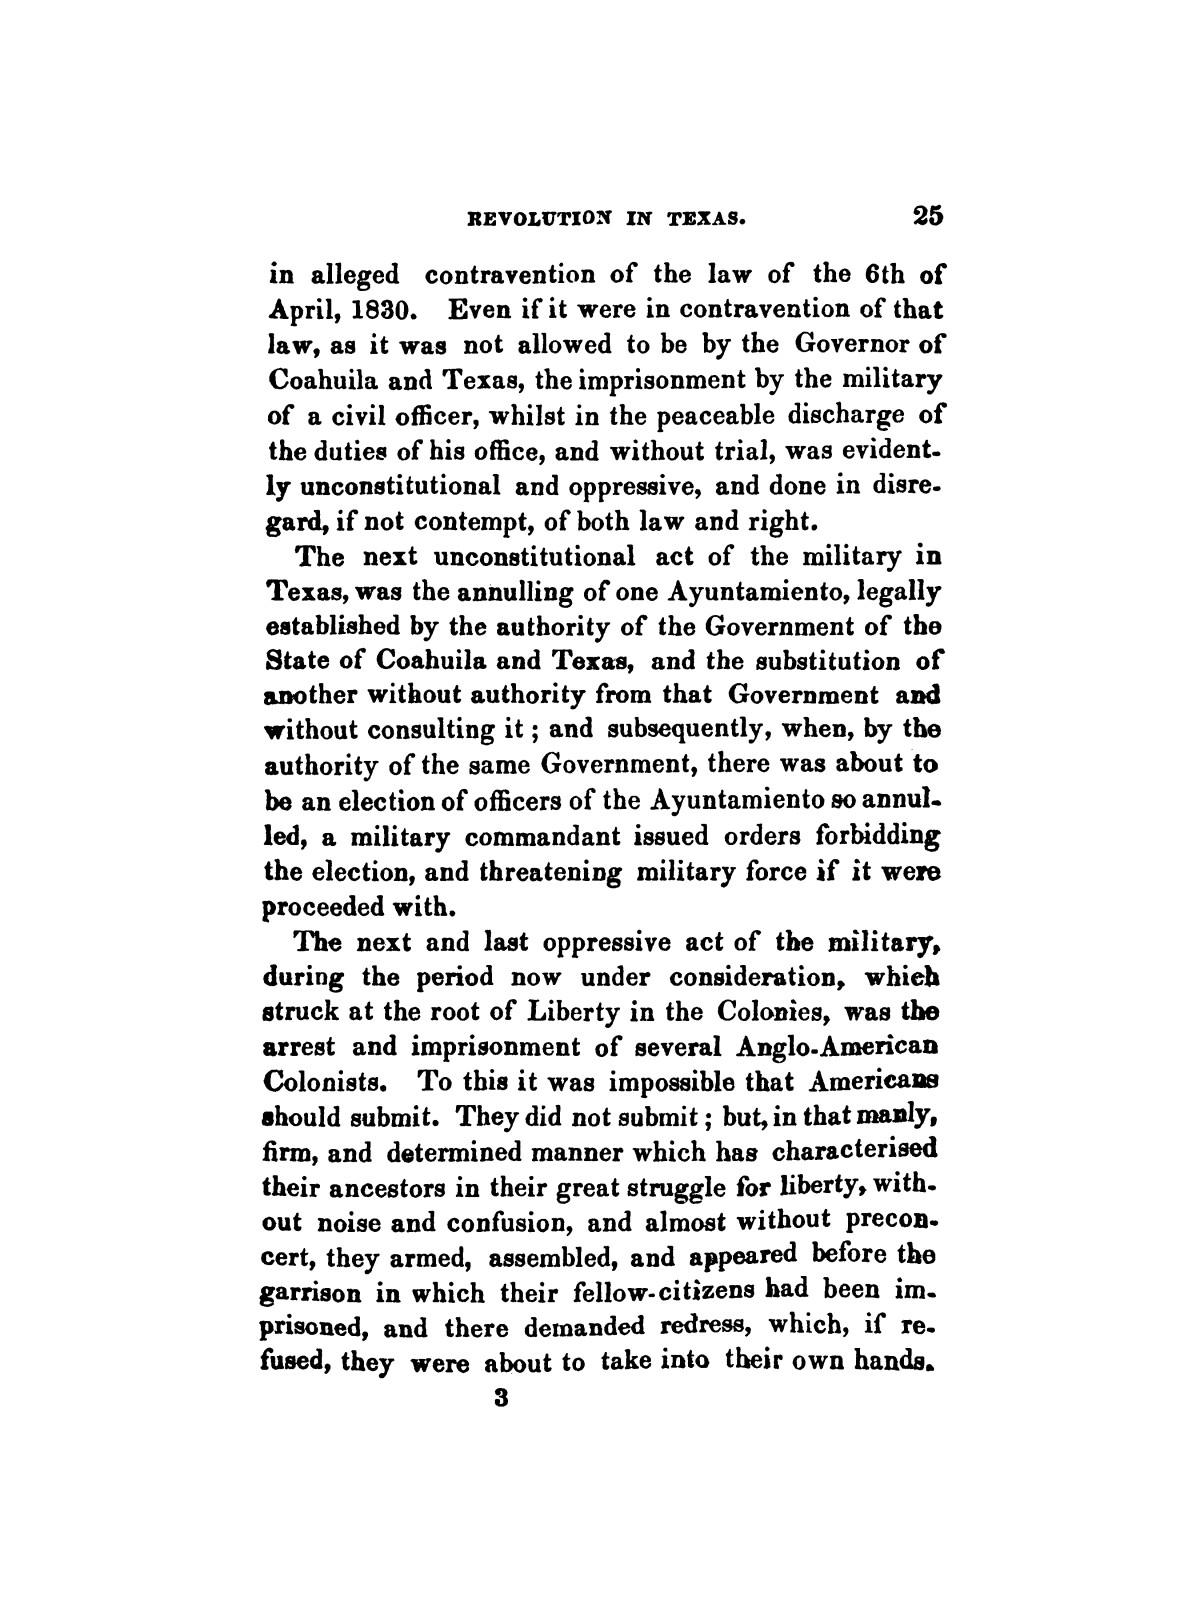 History of the revolution in Texas, particularly of the war of 1835 & '36; together with the latest geographical, topographical, and statistical accounts of the country, from the most authentic sources. Also, an appendix. By the Rev. C. Newell.                                                                                                      [Sequence #]: 37 of 227